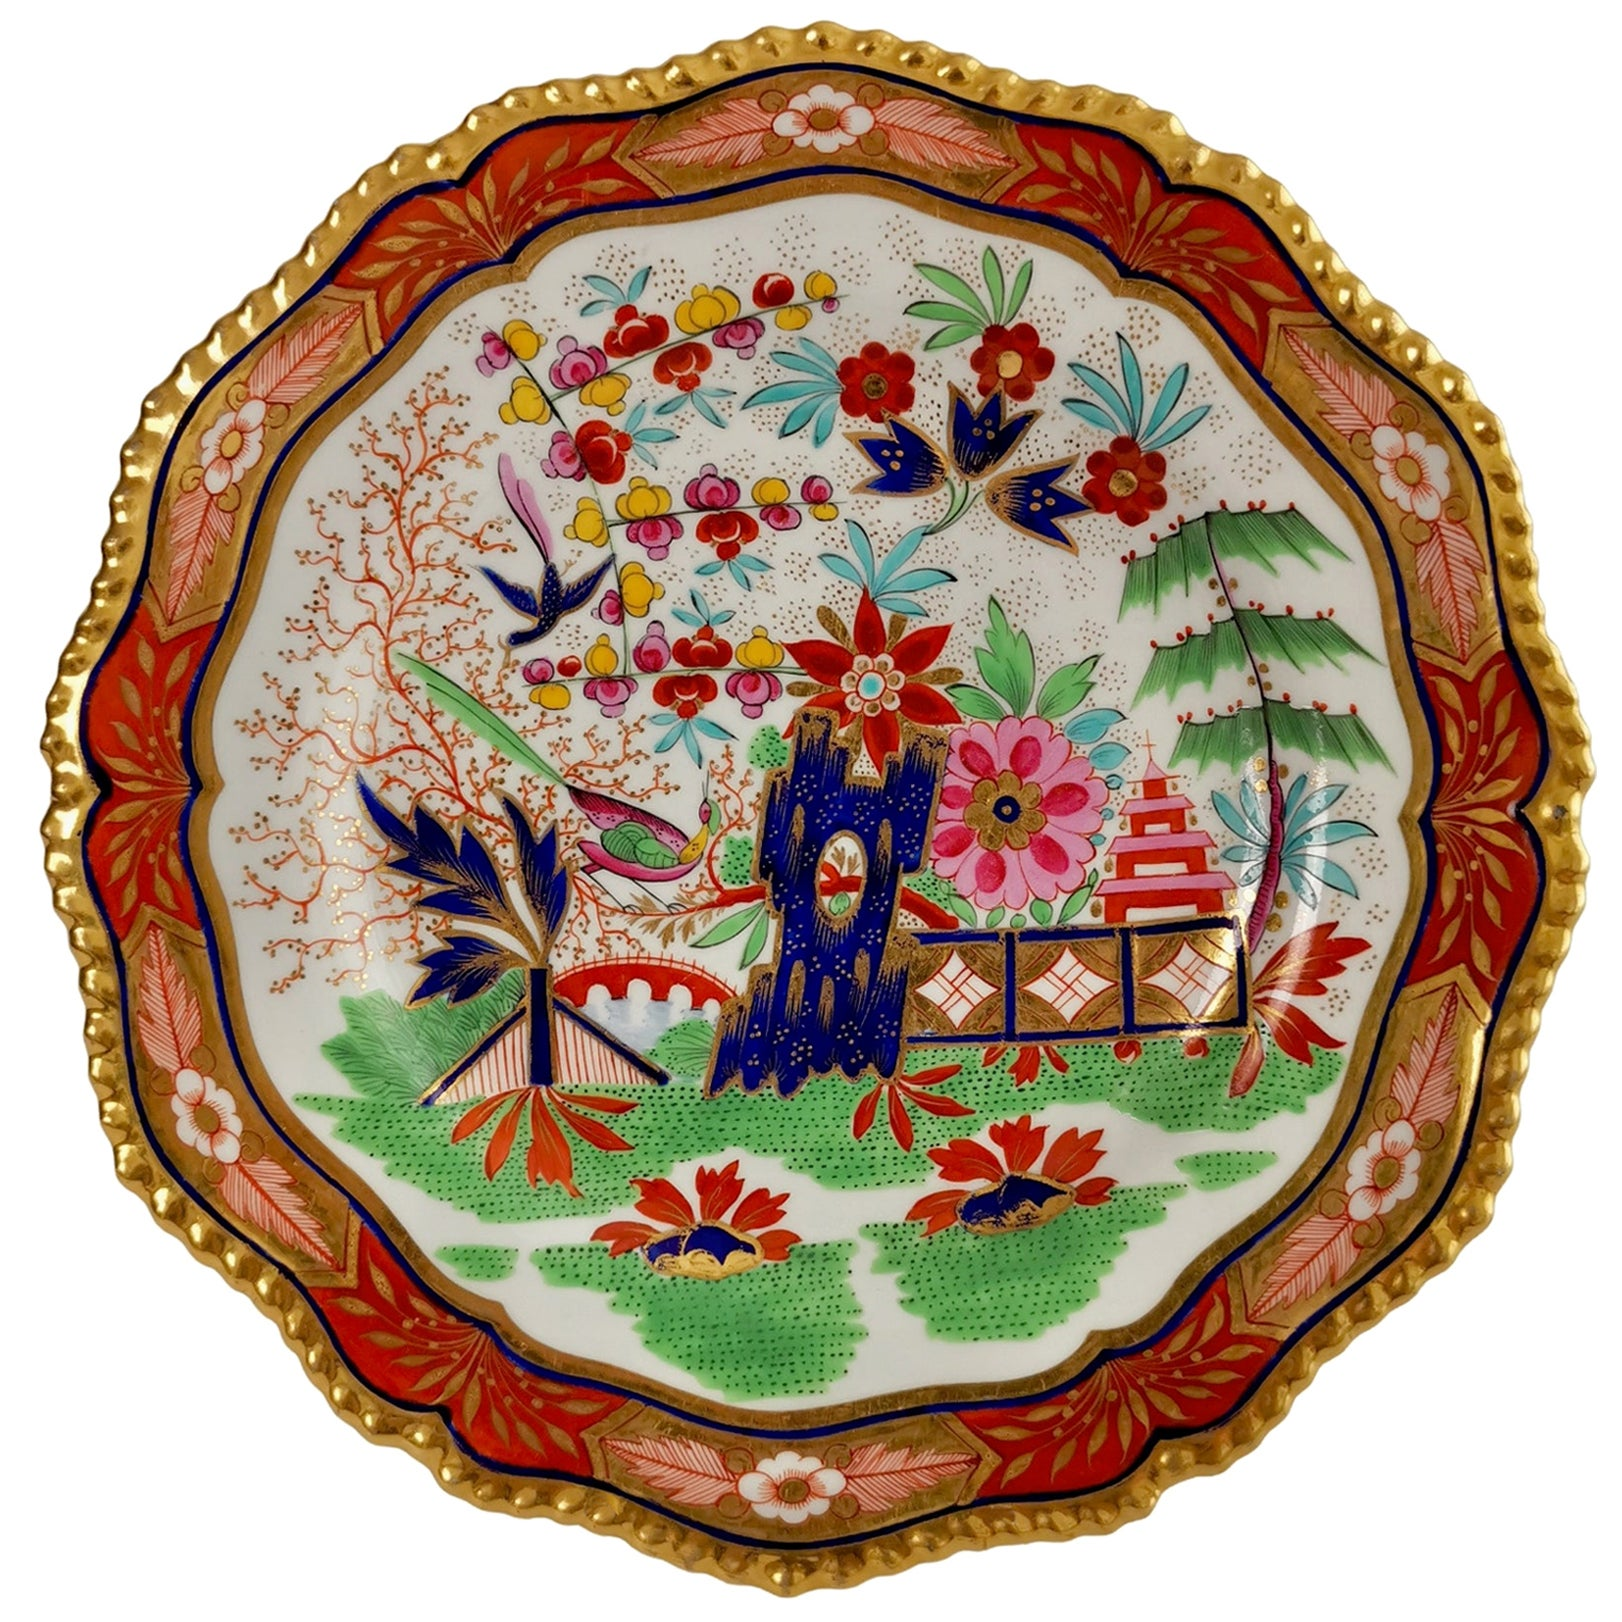 Flight Barr & Barr Porcelain Plate, Rich Imari Pattern, Regency circa 1825